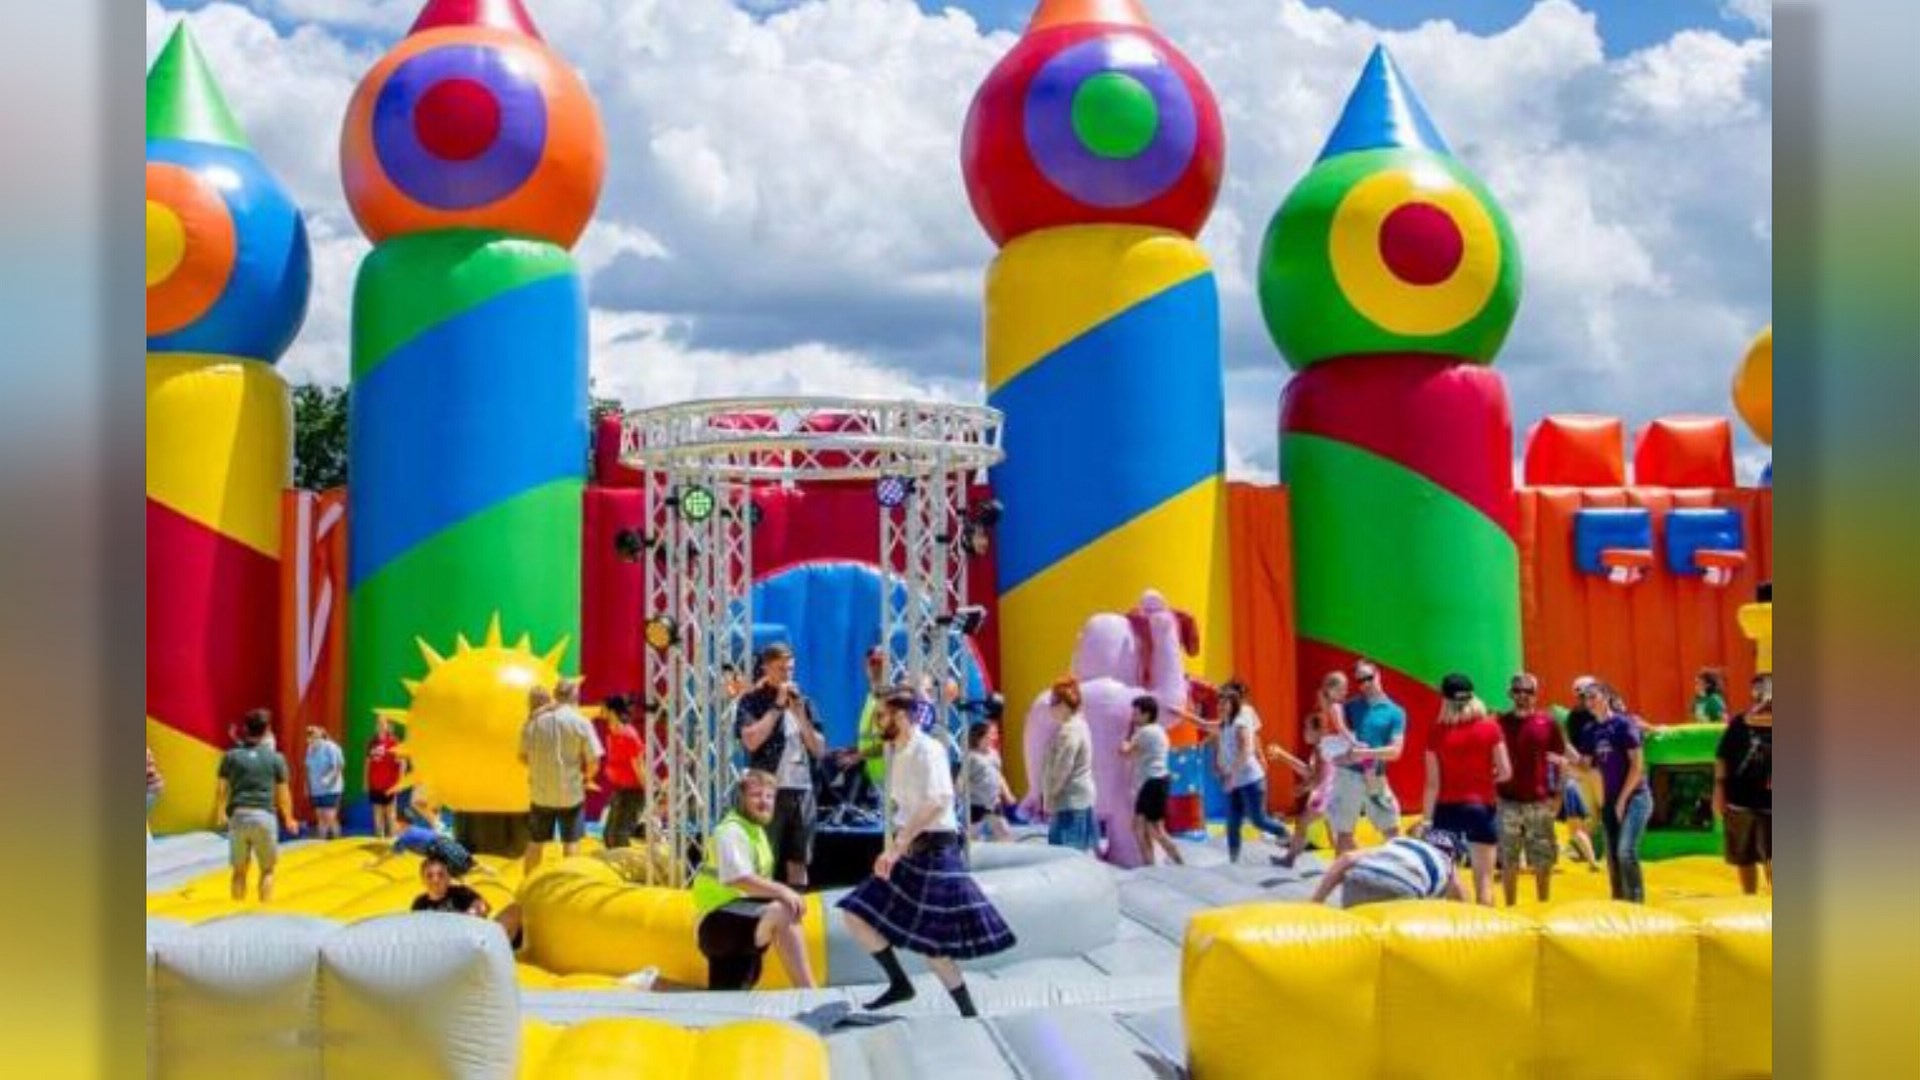 Worlds Biggest Bounce House Coming To Houston In October Khoucom